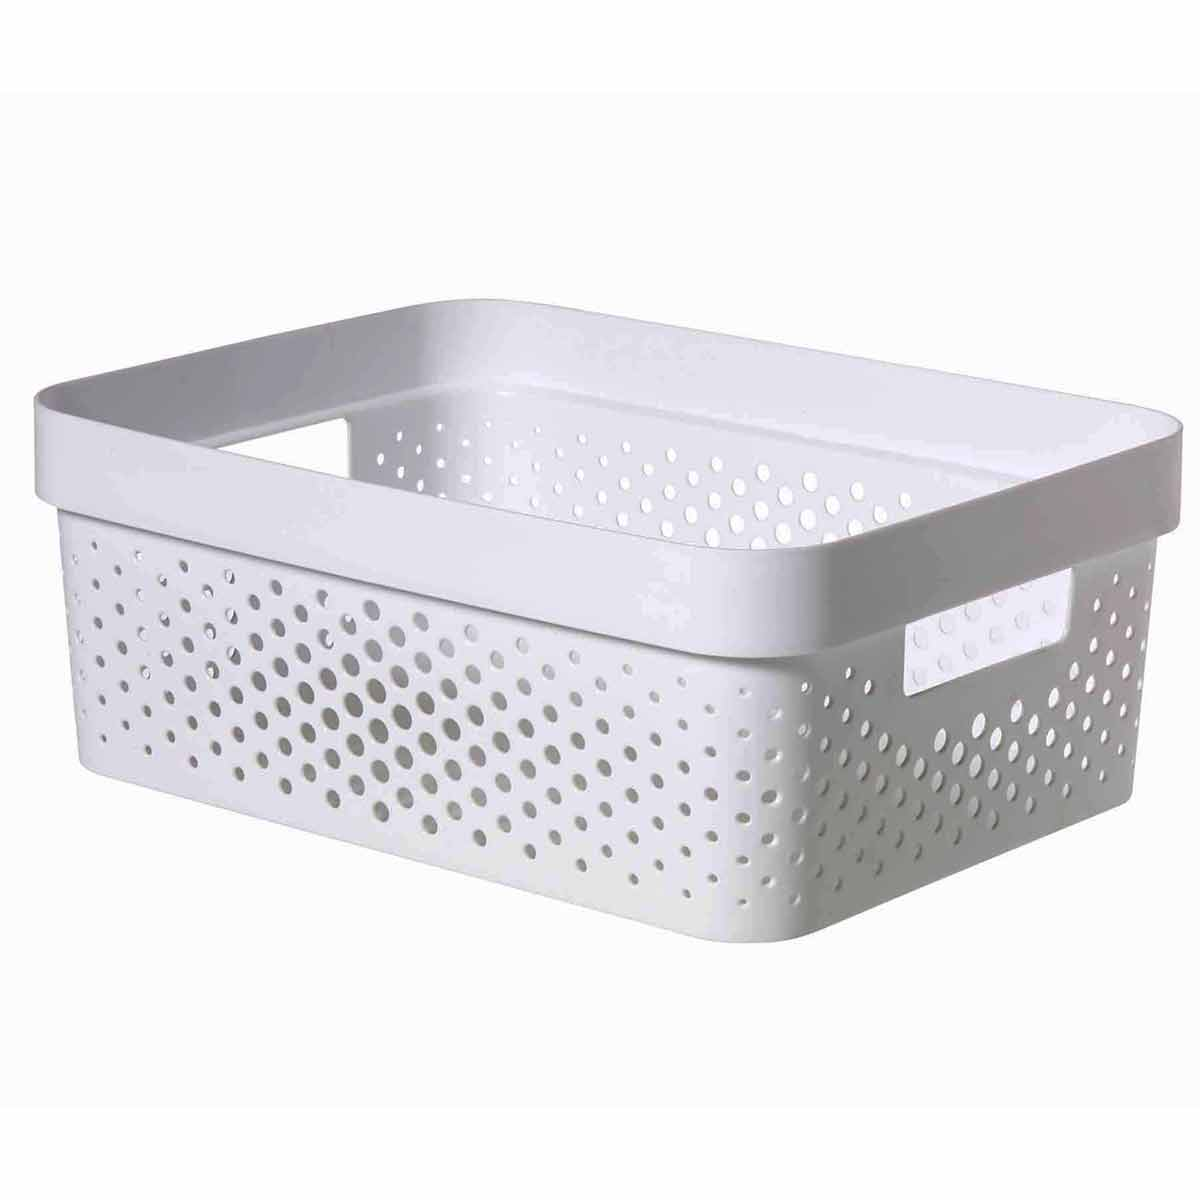 Curver Infinity Recycled Storage Basket 11 Litre, White